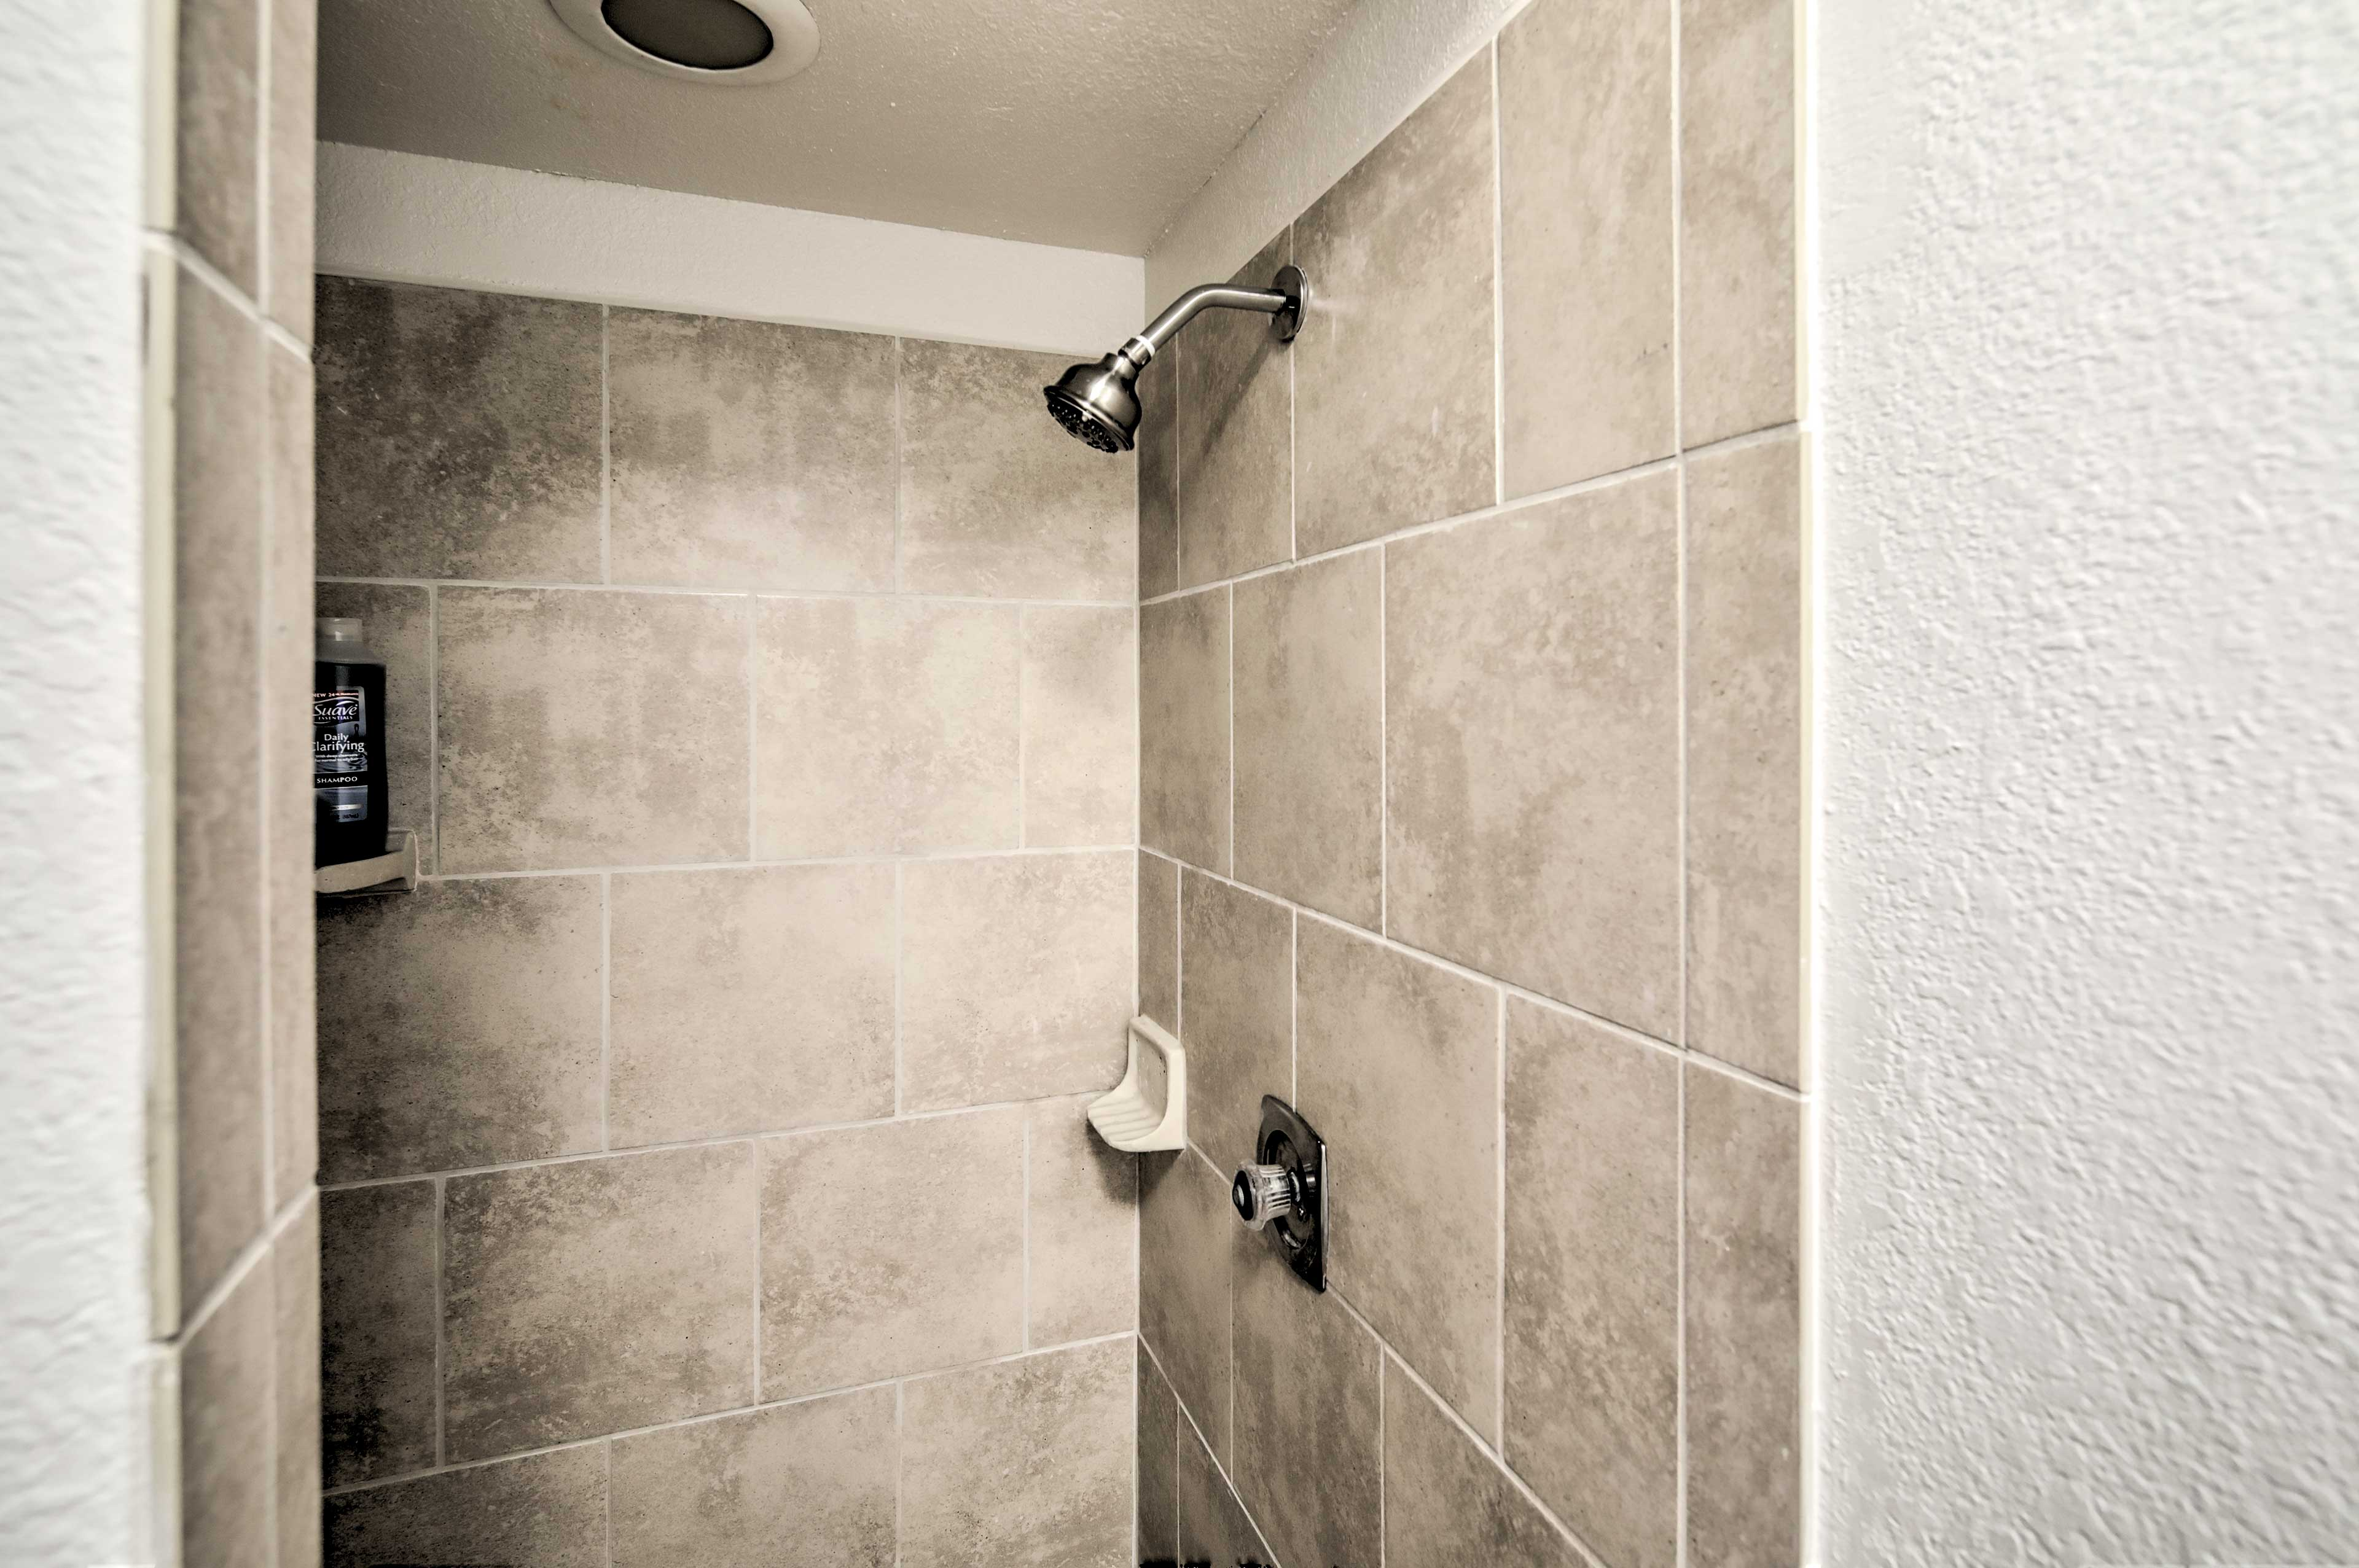 This bathroom features a walk-in shower.